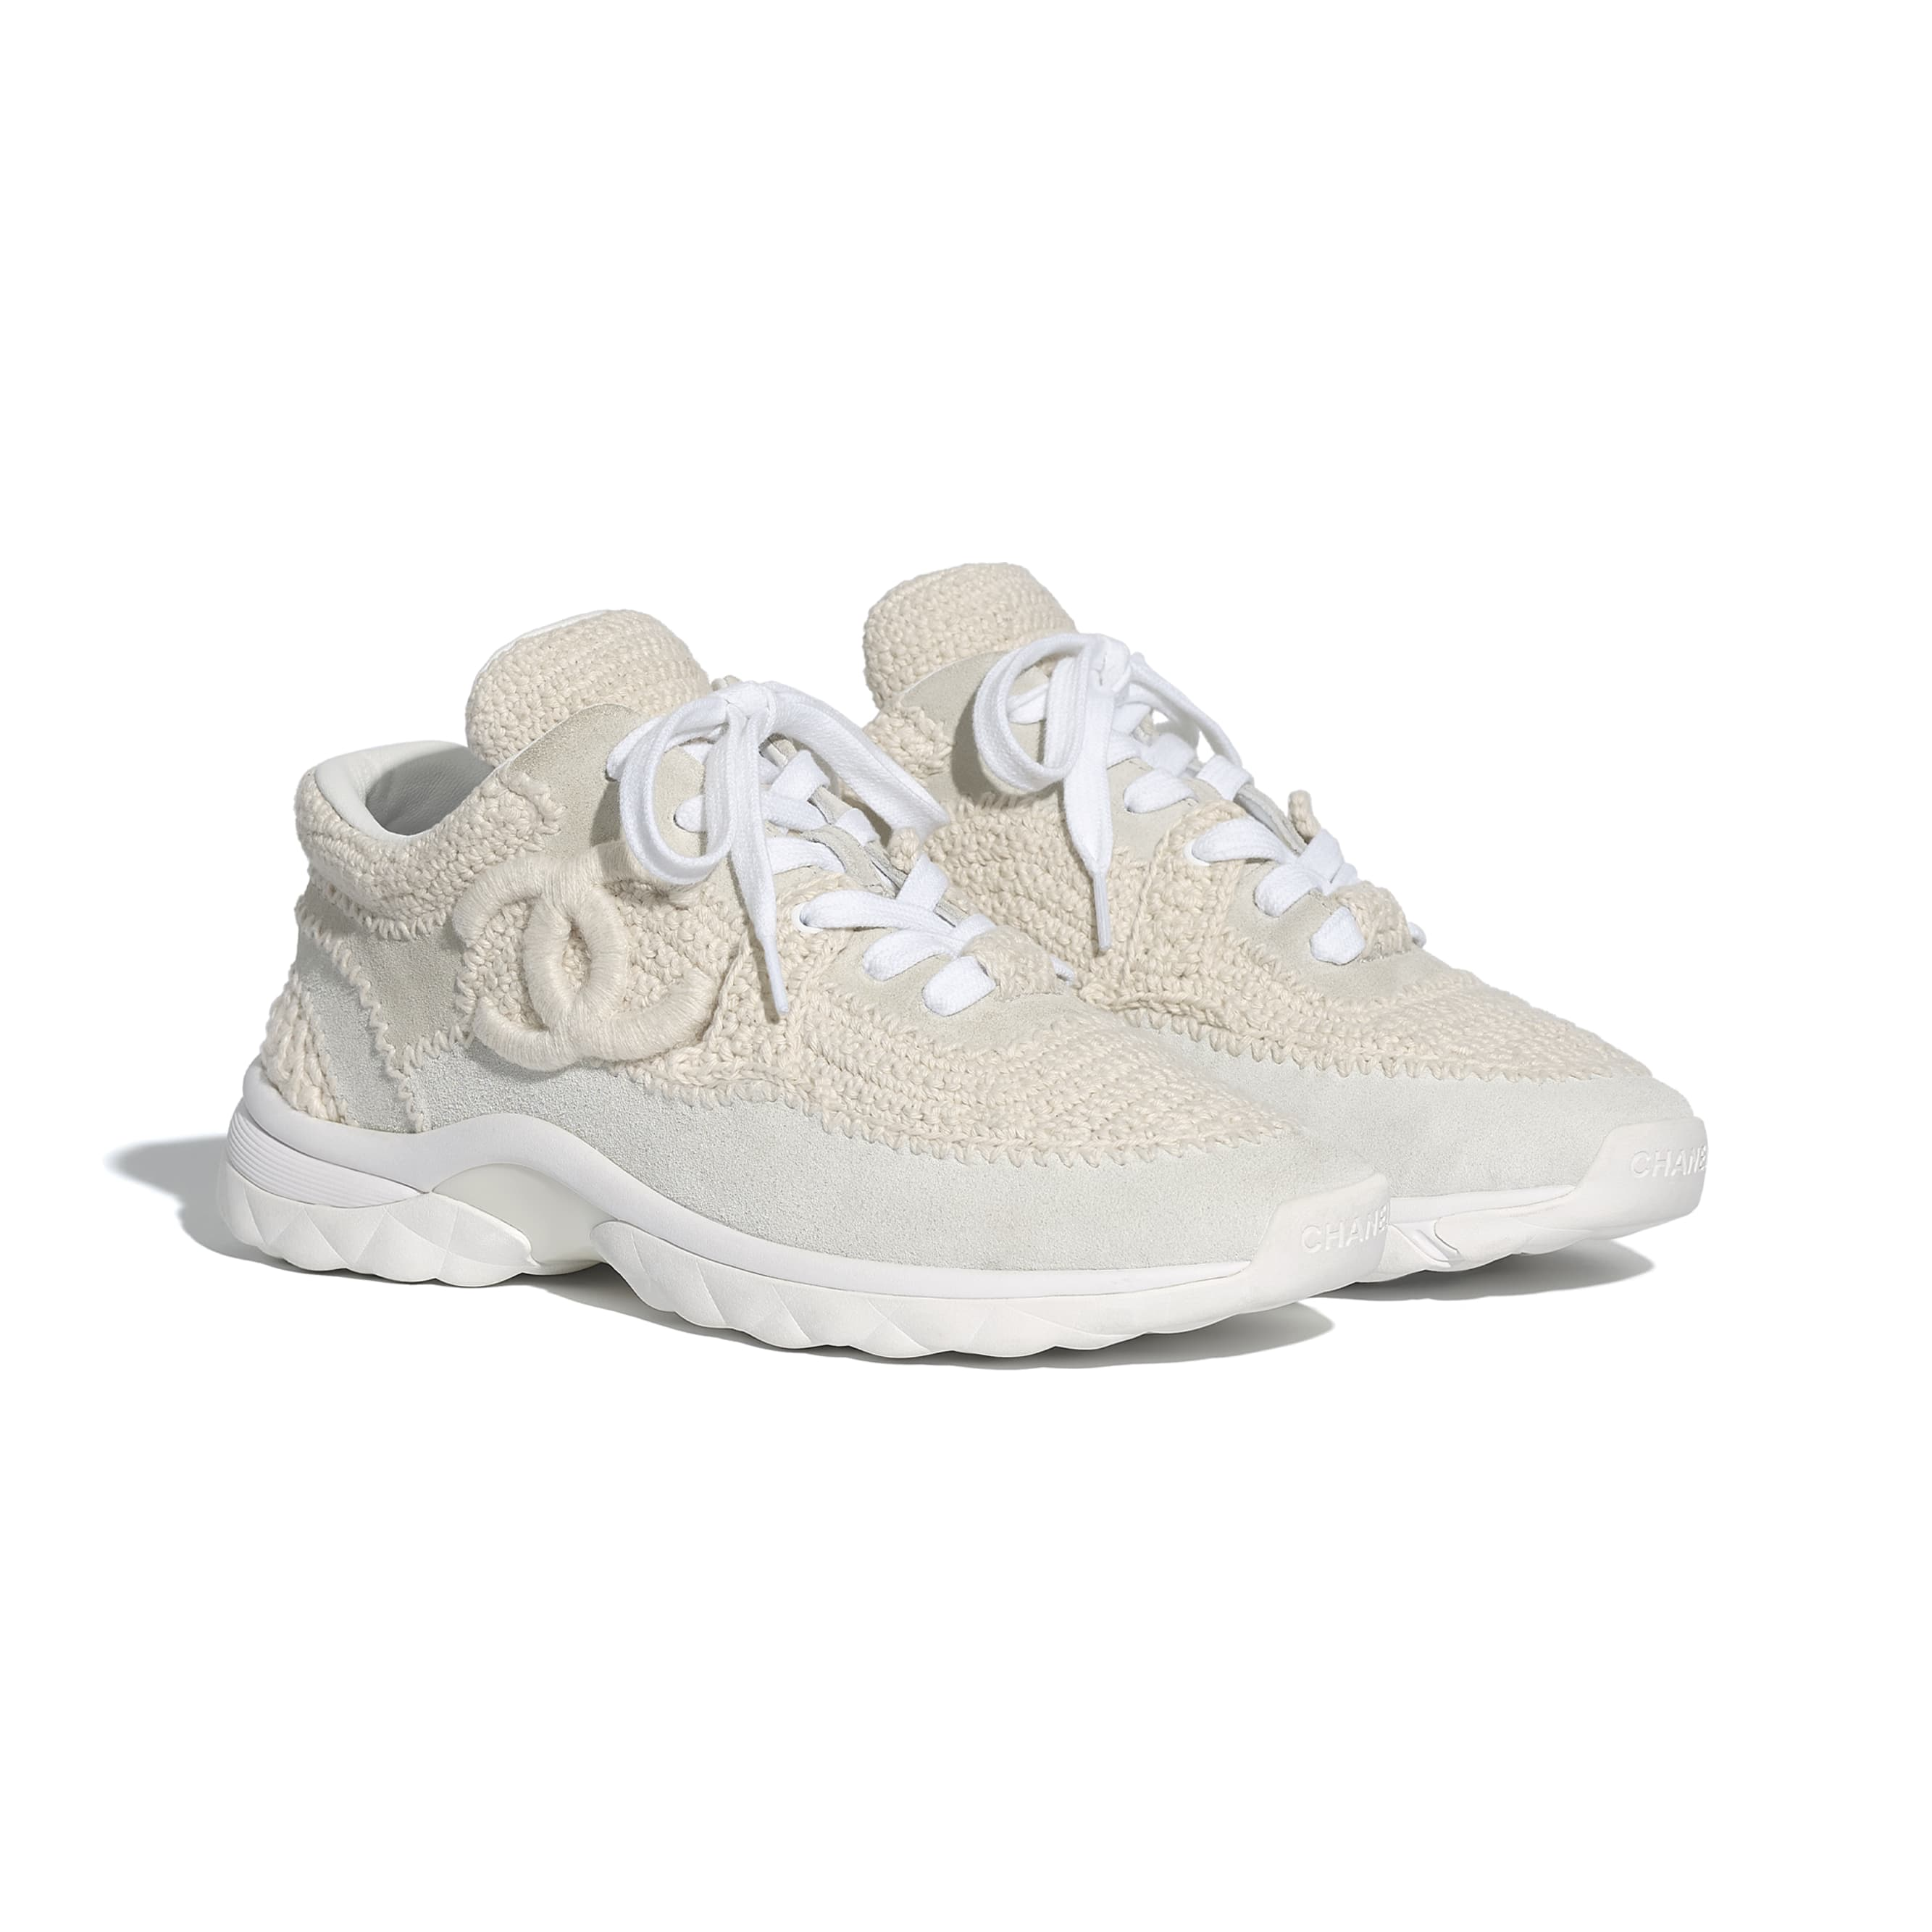 Trainers - Ivory - CHANEL - Alternative view - see standard sized version